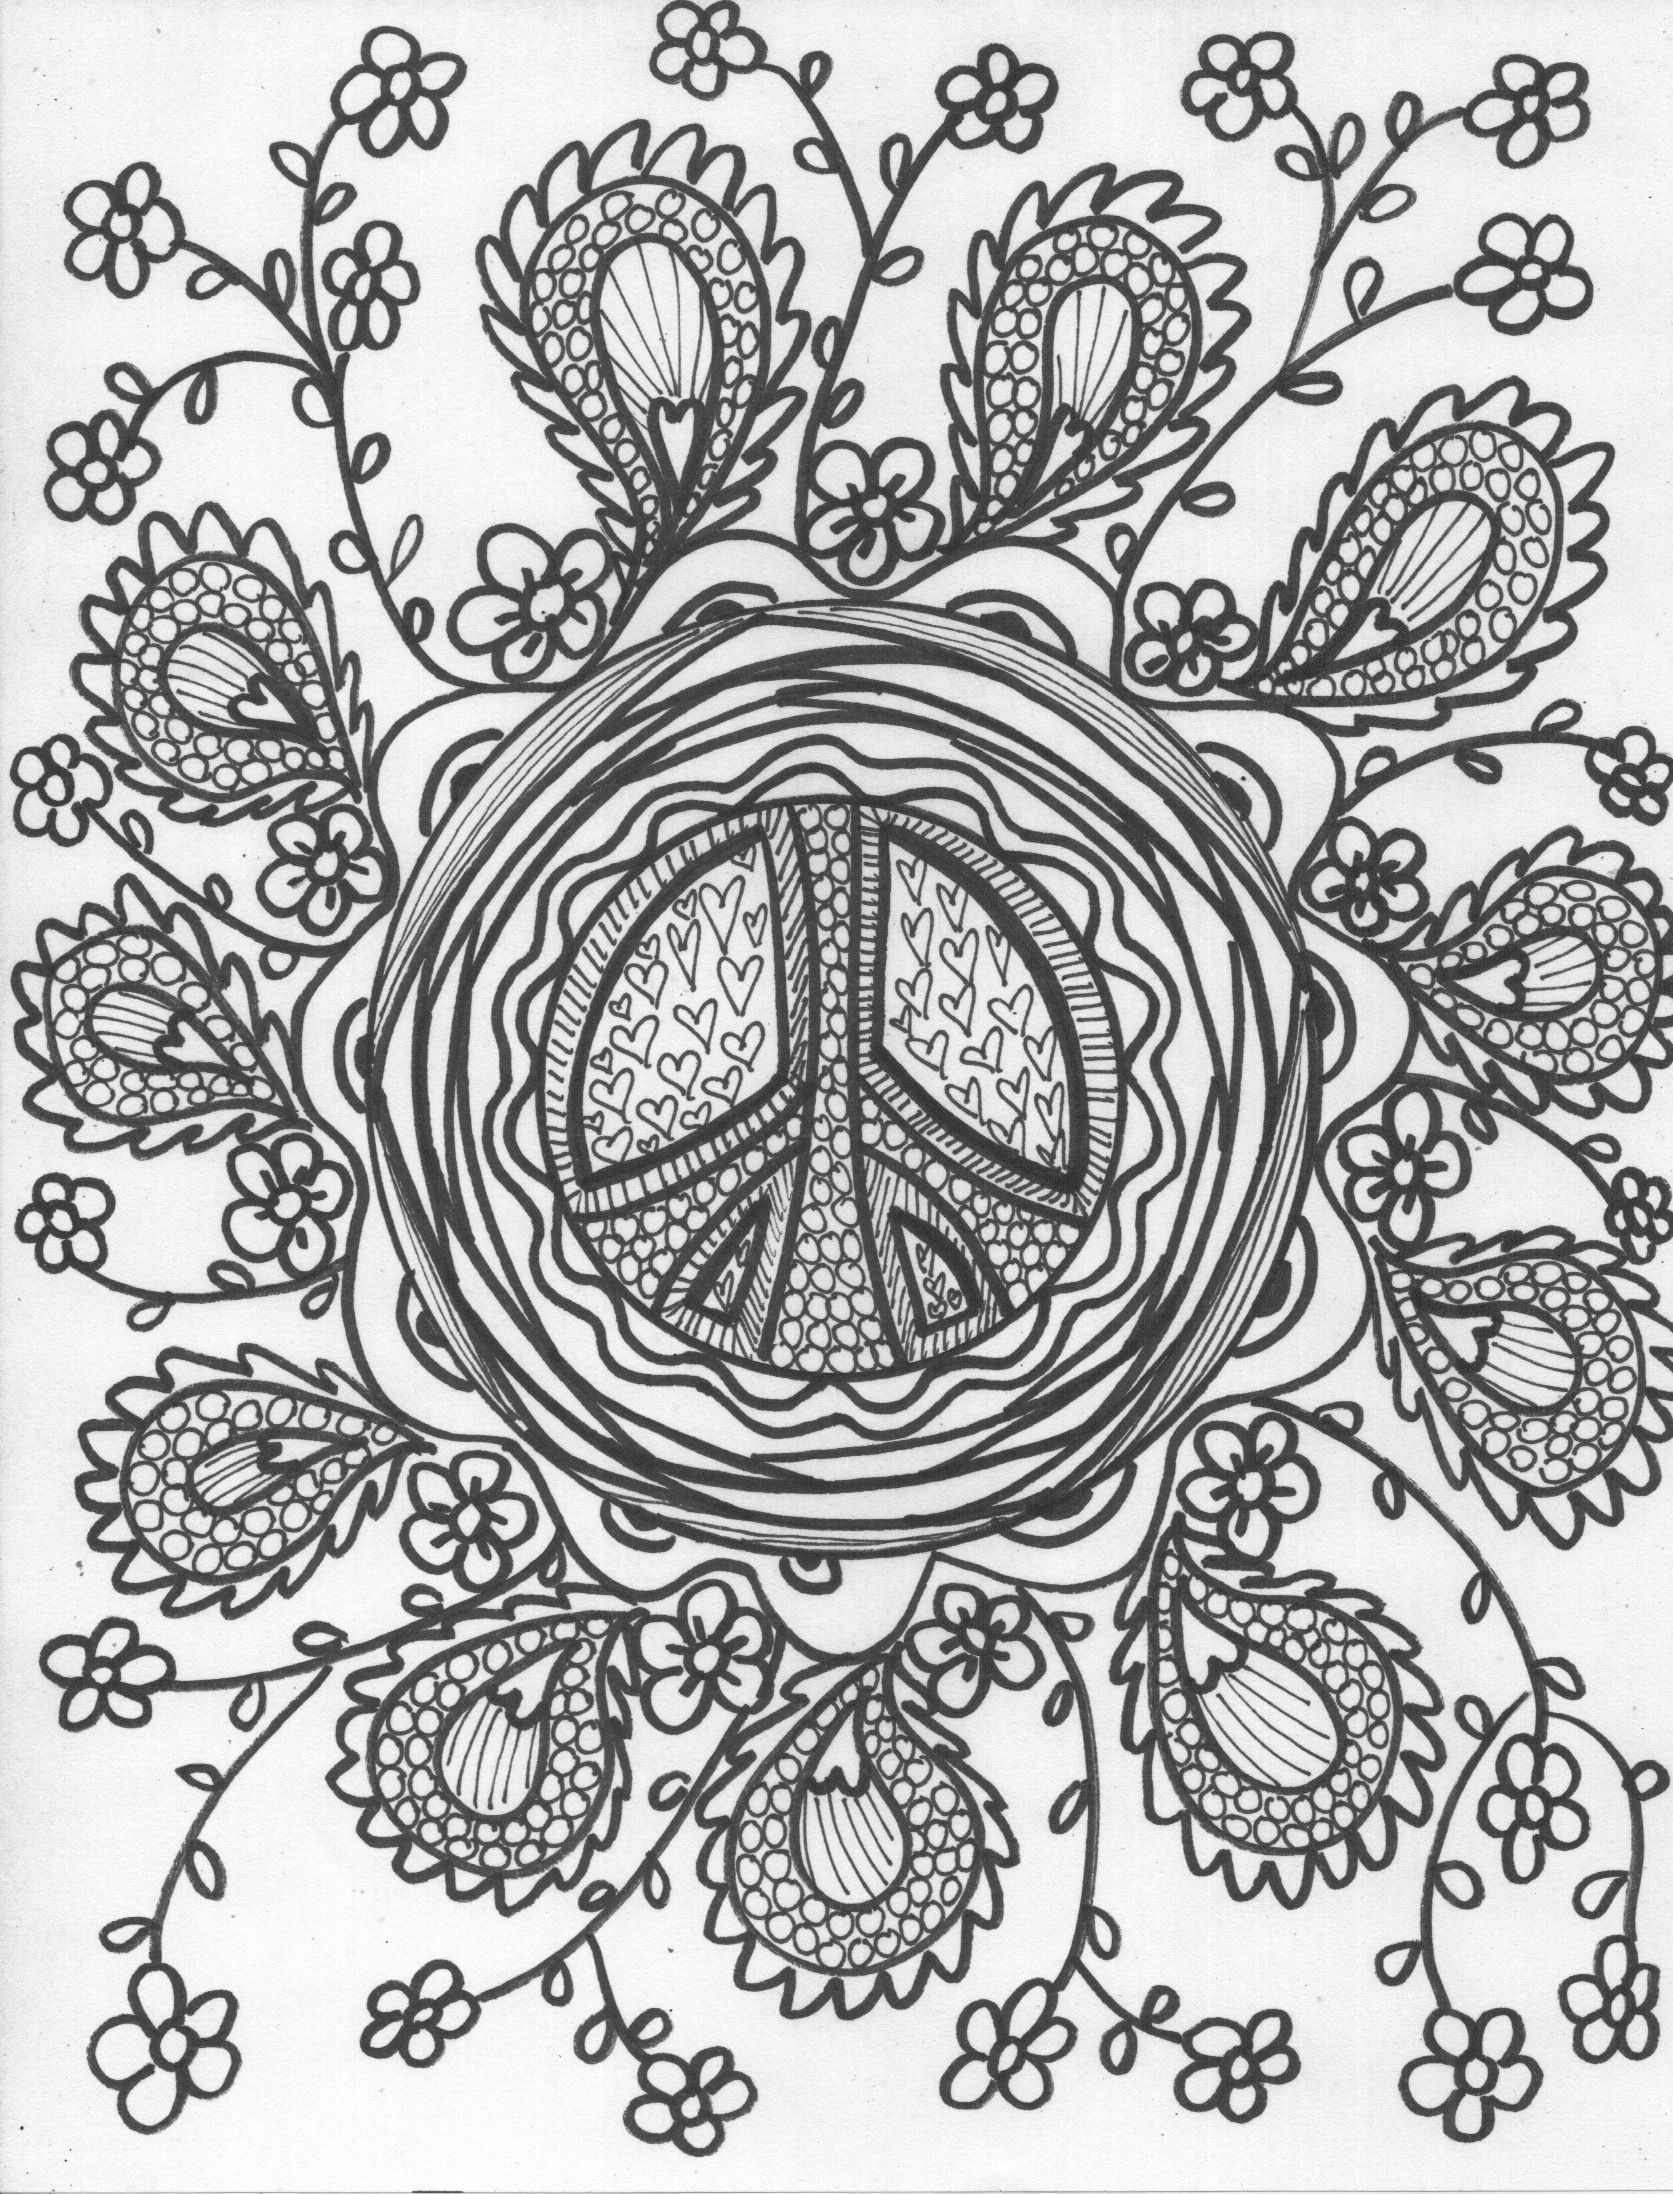 paisley Coloring Pages pg 5 paisley peace color me